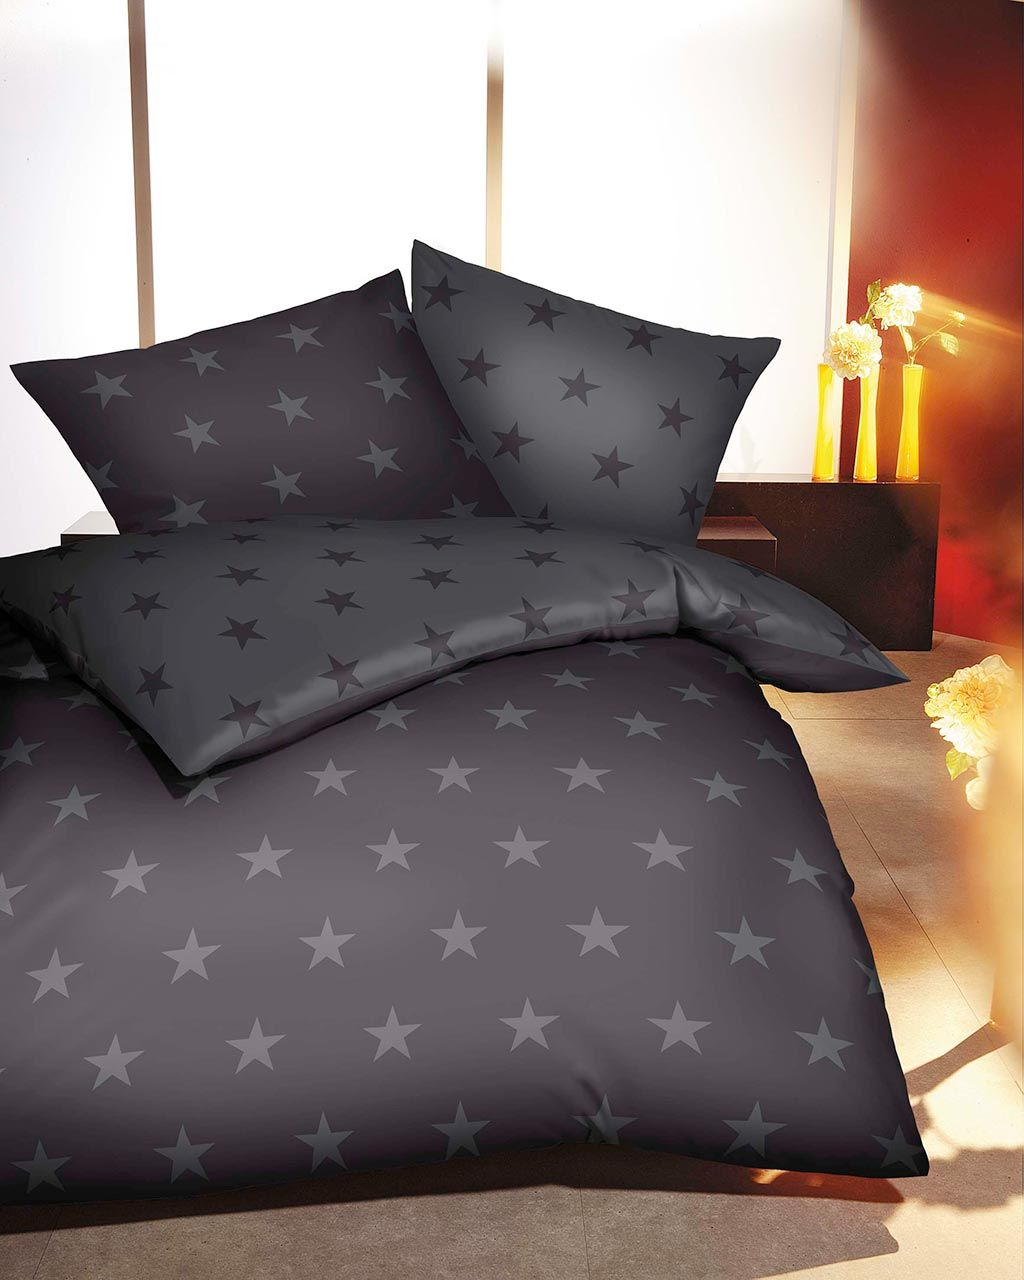 kaeppel biber bettw sche stars zinn diese wendebettw sche von kaeppel f r den winter zieht alle. Black Bedroom Furniture Sets. Home Design Ideas